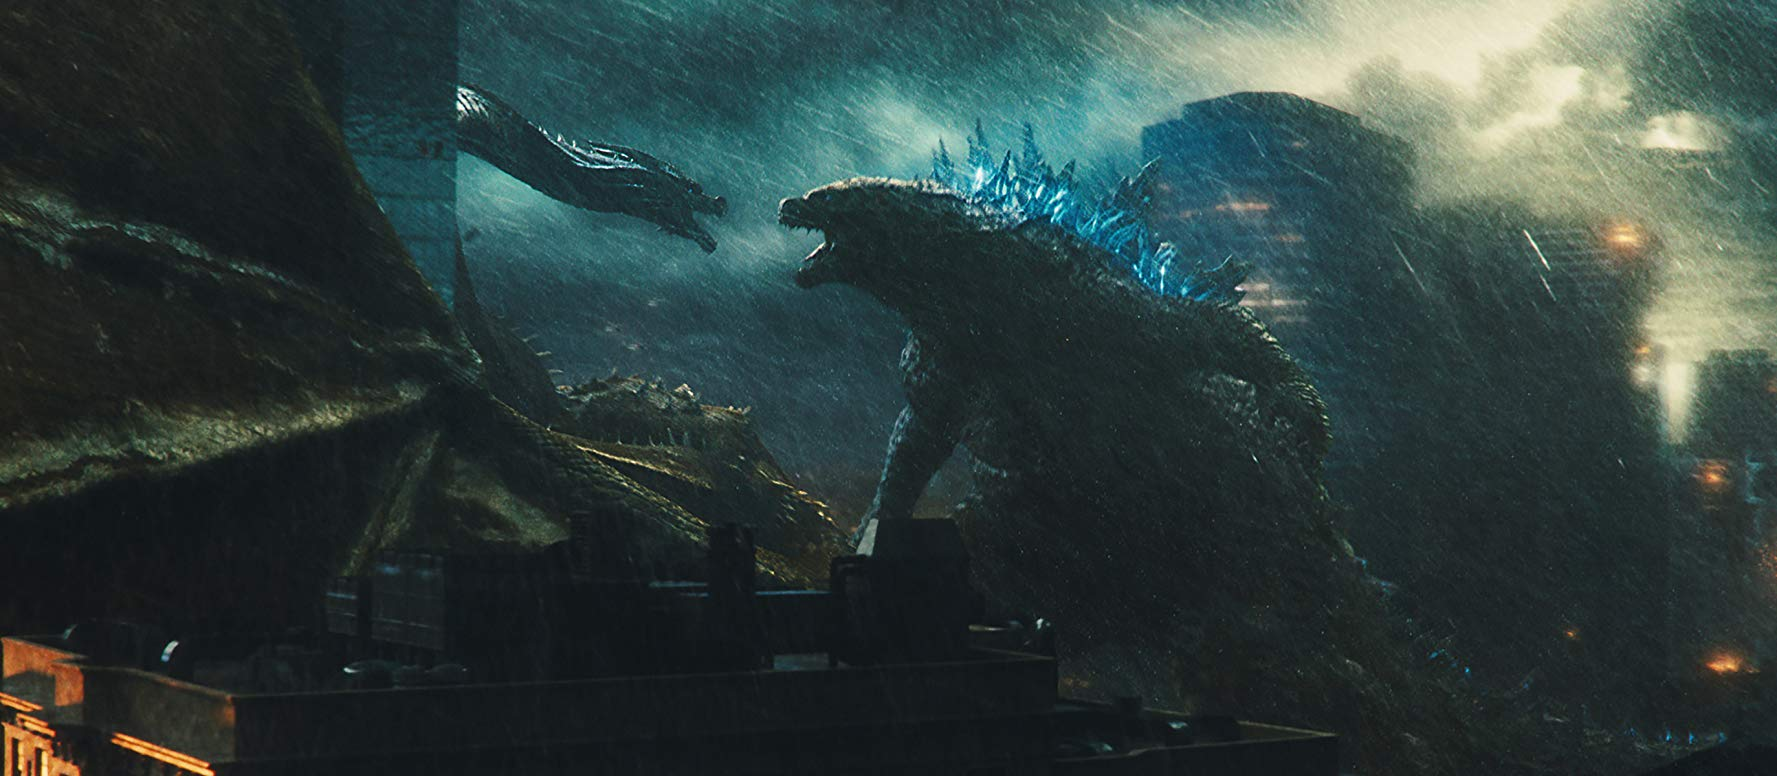 godzilla king of the monsters - 1.jpg